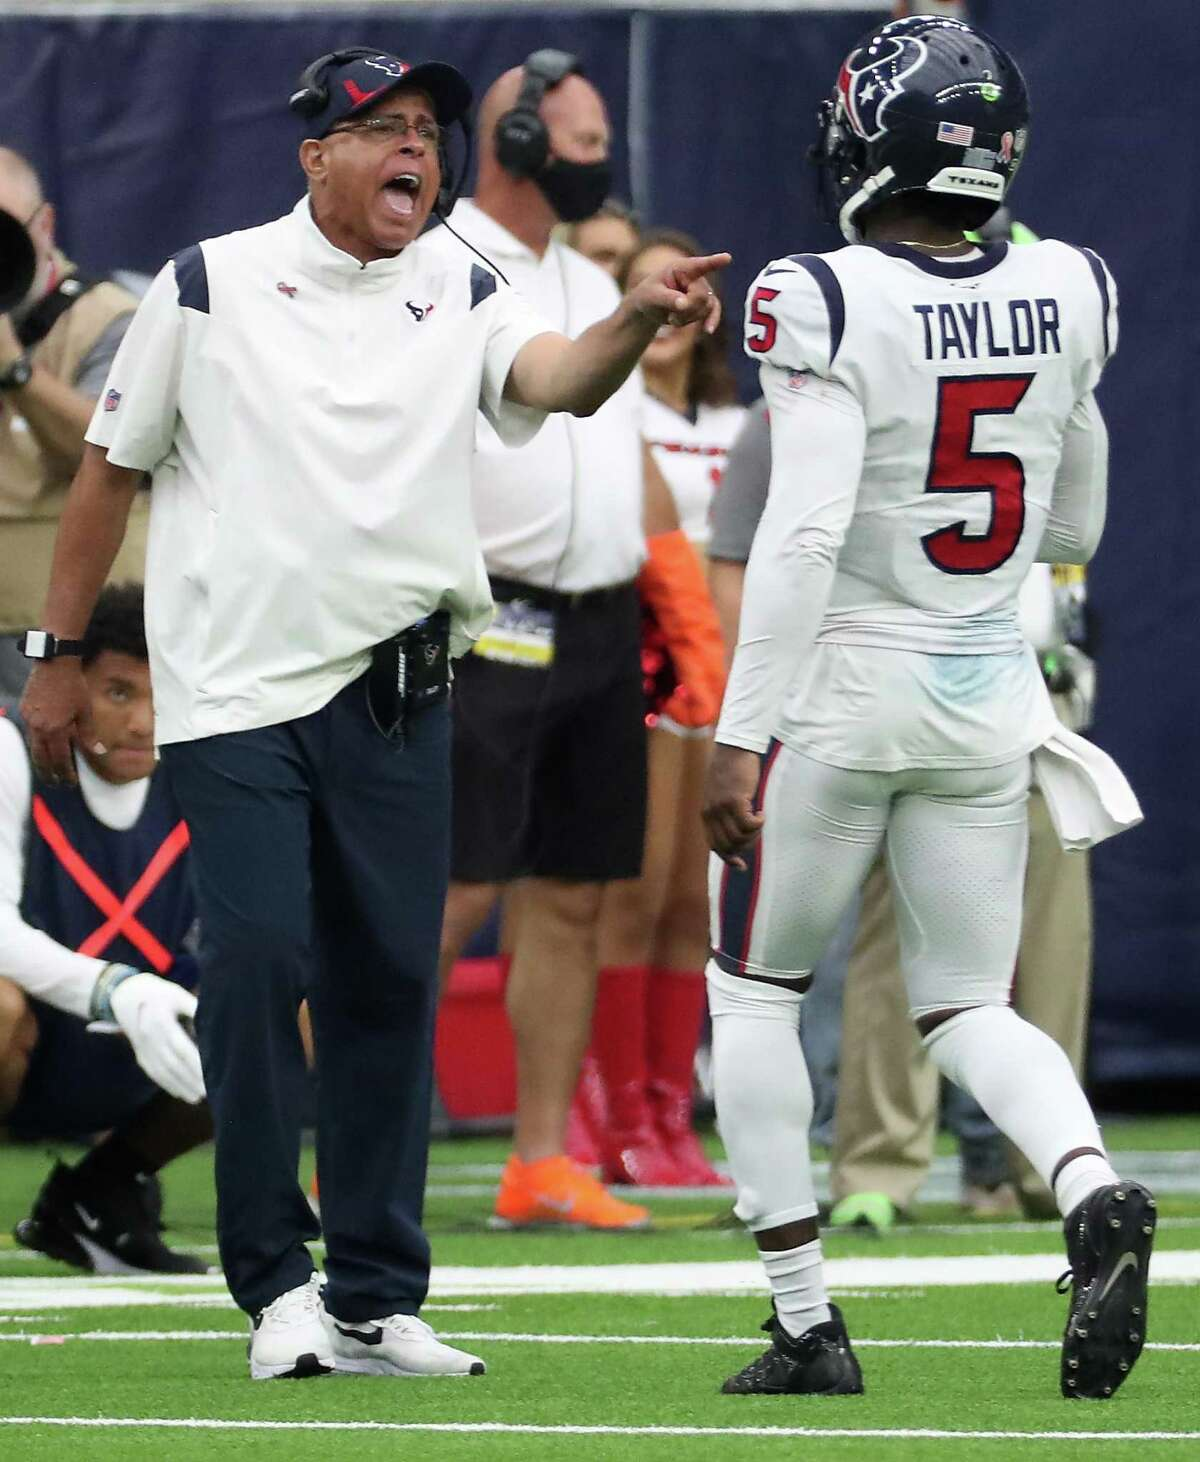 Houston Texans head coach David Culley calls out instructions to quarterback Tyrod Taylor during the fourth quarter on Sunday, Sept. 12, 2021 in Houston.